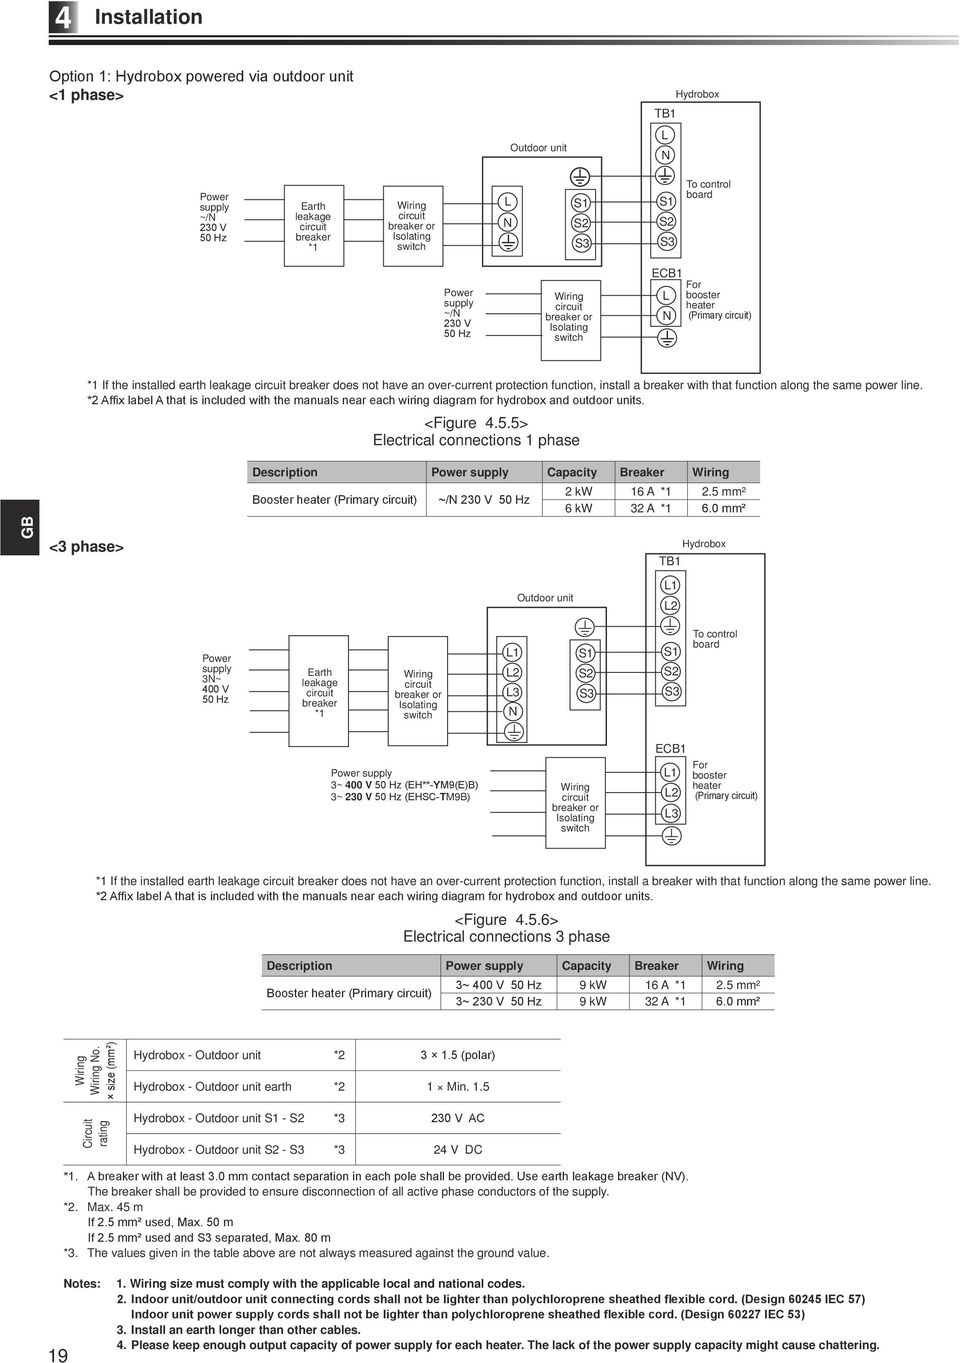 Hydrobox Ehsc Series Ehpx Ersc Pdf Earth Leakage Circuit Breaker Wiring Diagram Does Not Have An Over Current Protection Function Install A With That